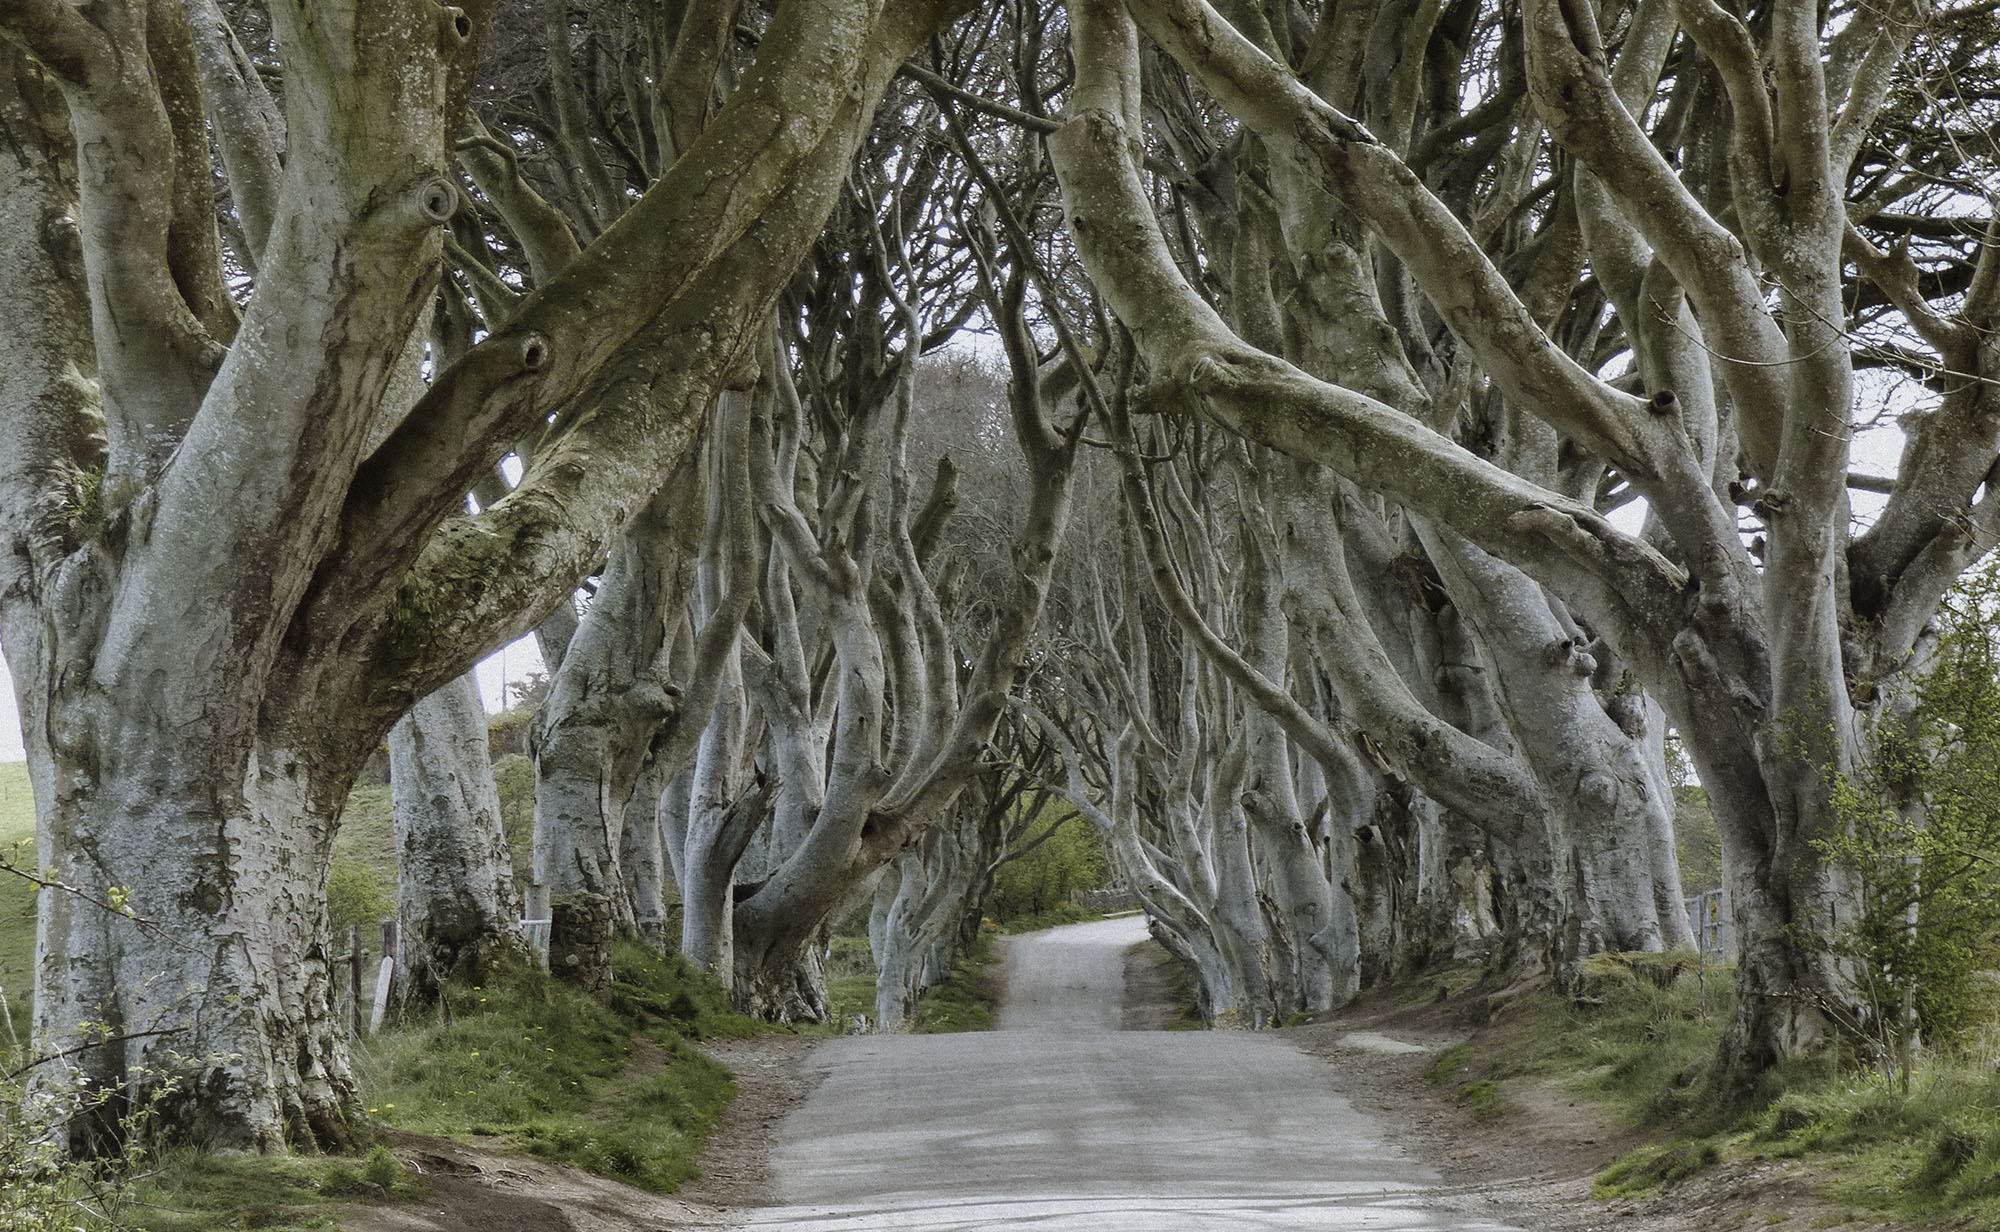 This Ireland 7 day Itinerary includes stops along the most famous Game Of Thrones film locations